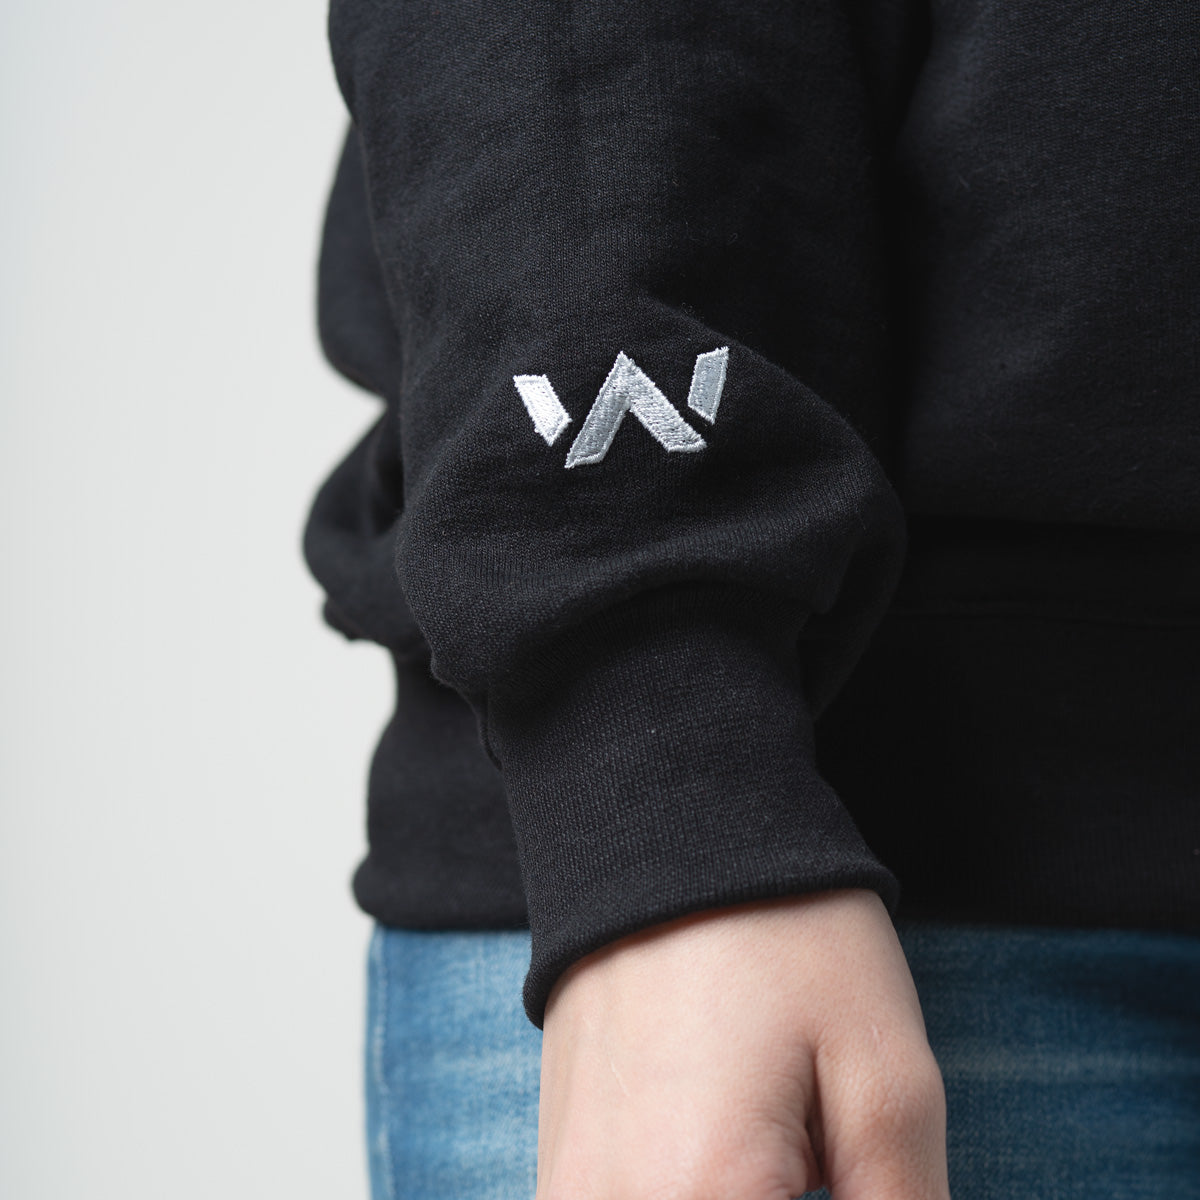 ELEVATION WORSHIP Crewneck Sweater